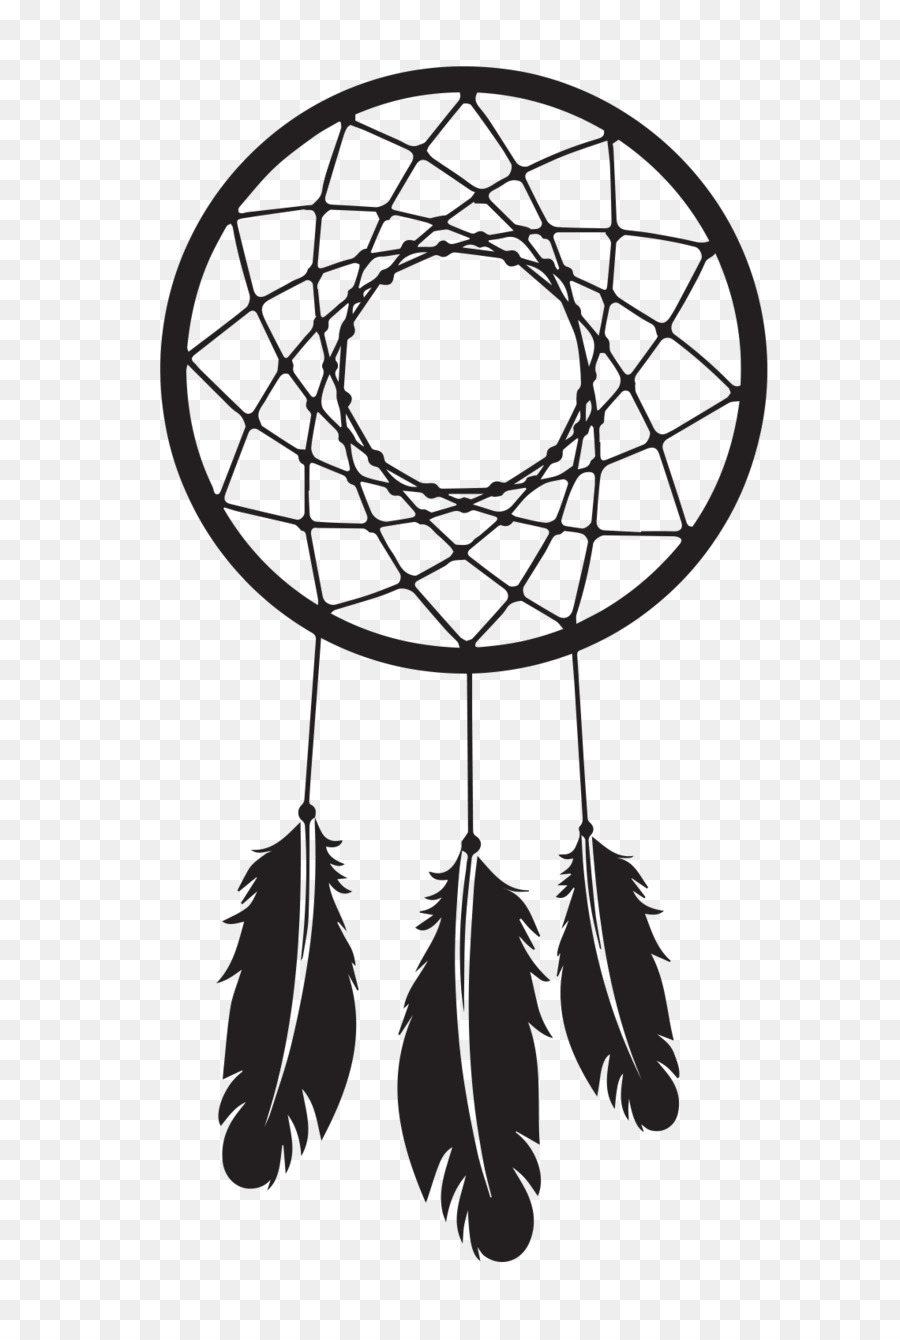 Royalty free stock photography. Dreamcatcher clipart